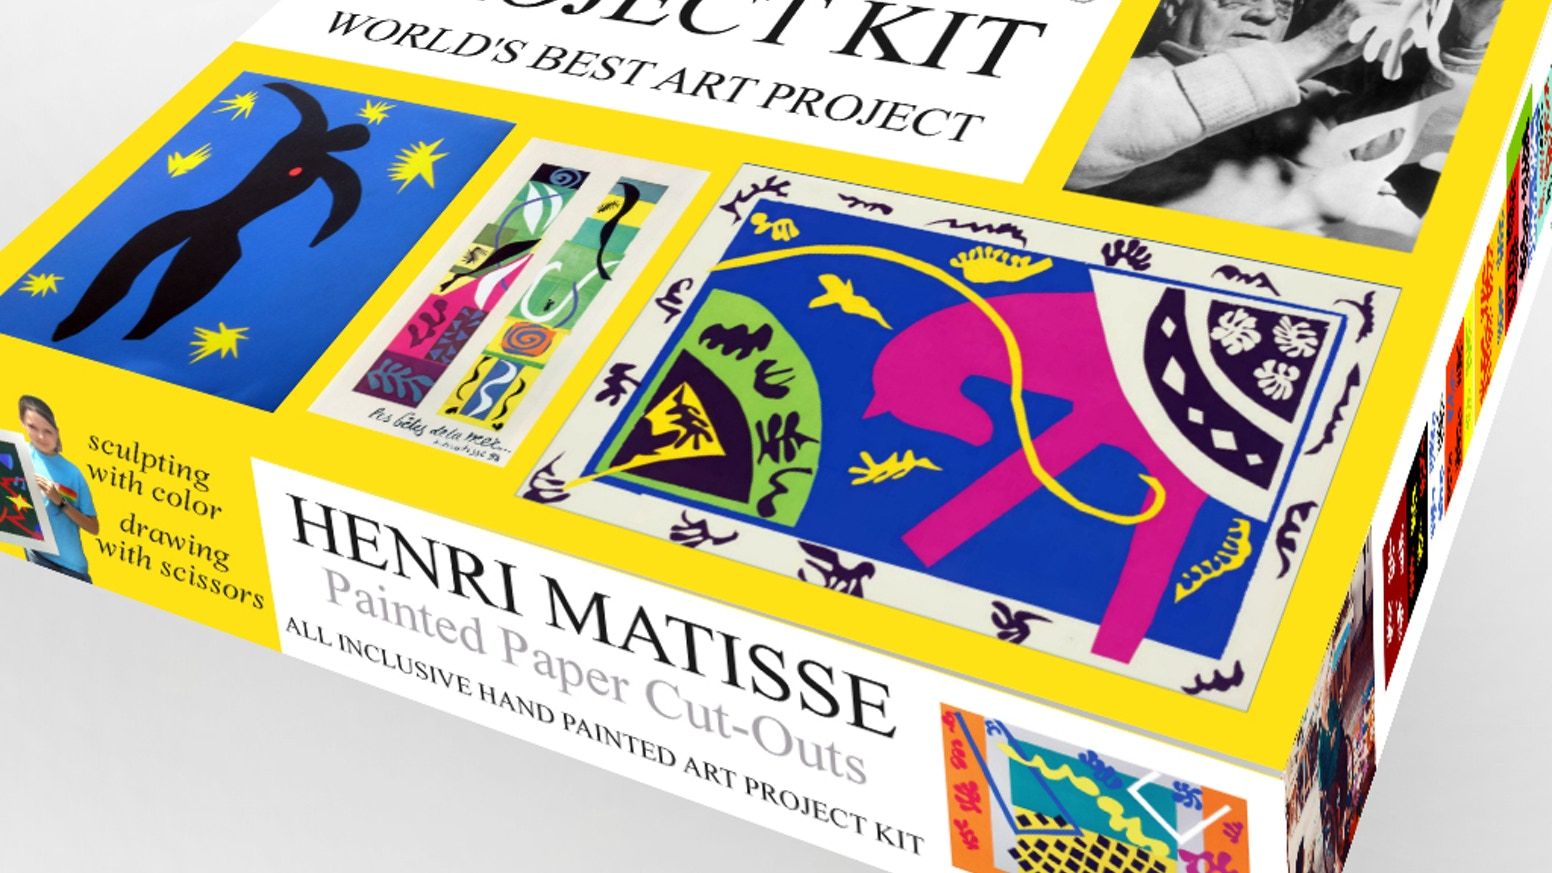 henri matisse painted paper cut outs project kit by patrick durkin